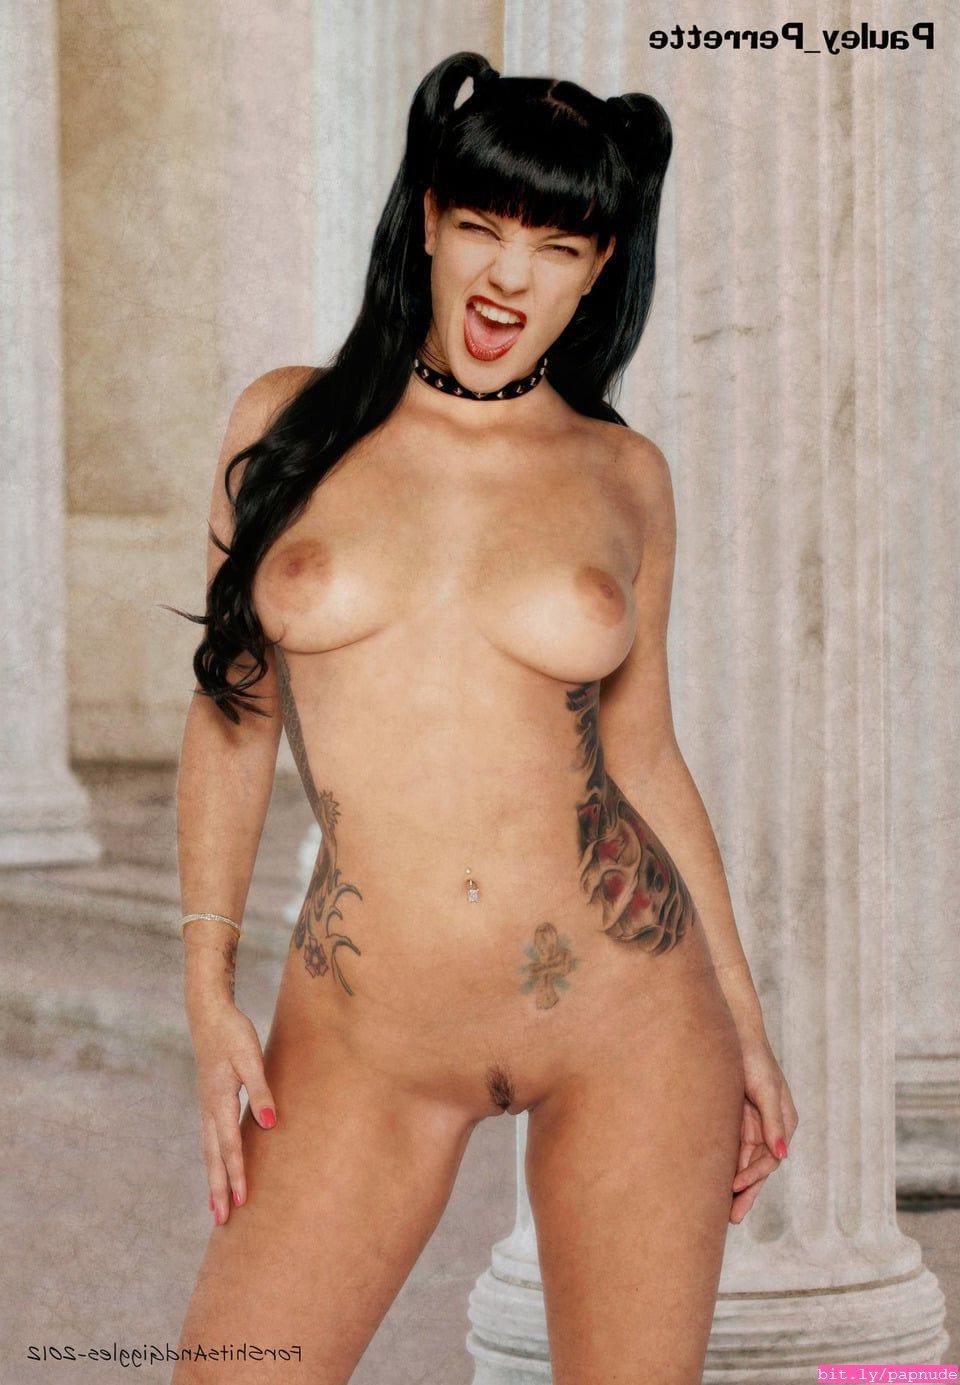 Pauley perrette ever been nude